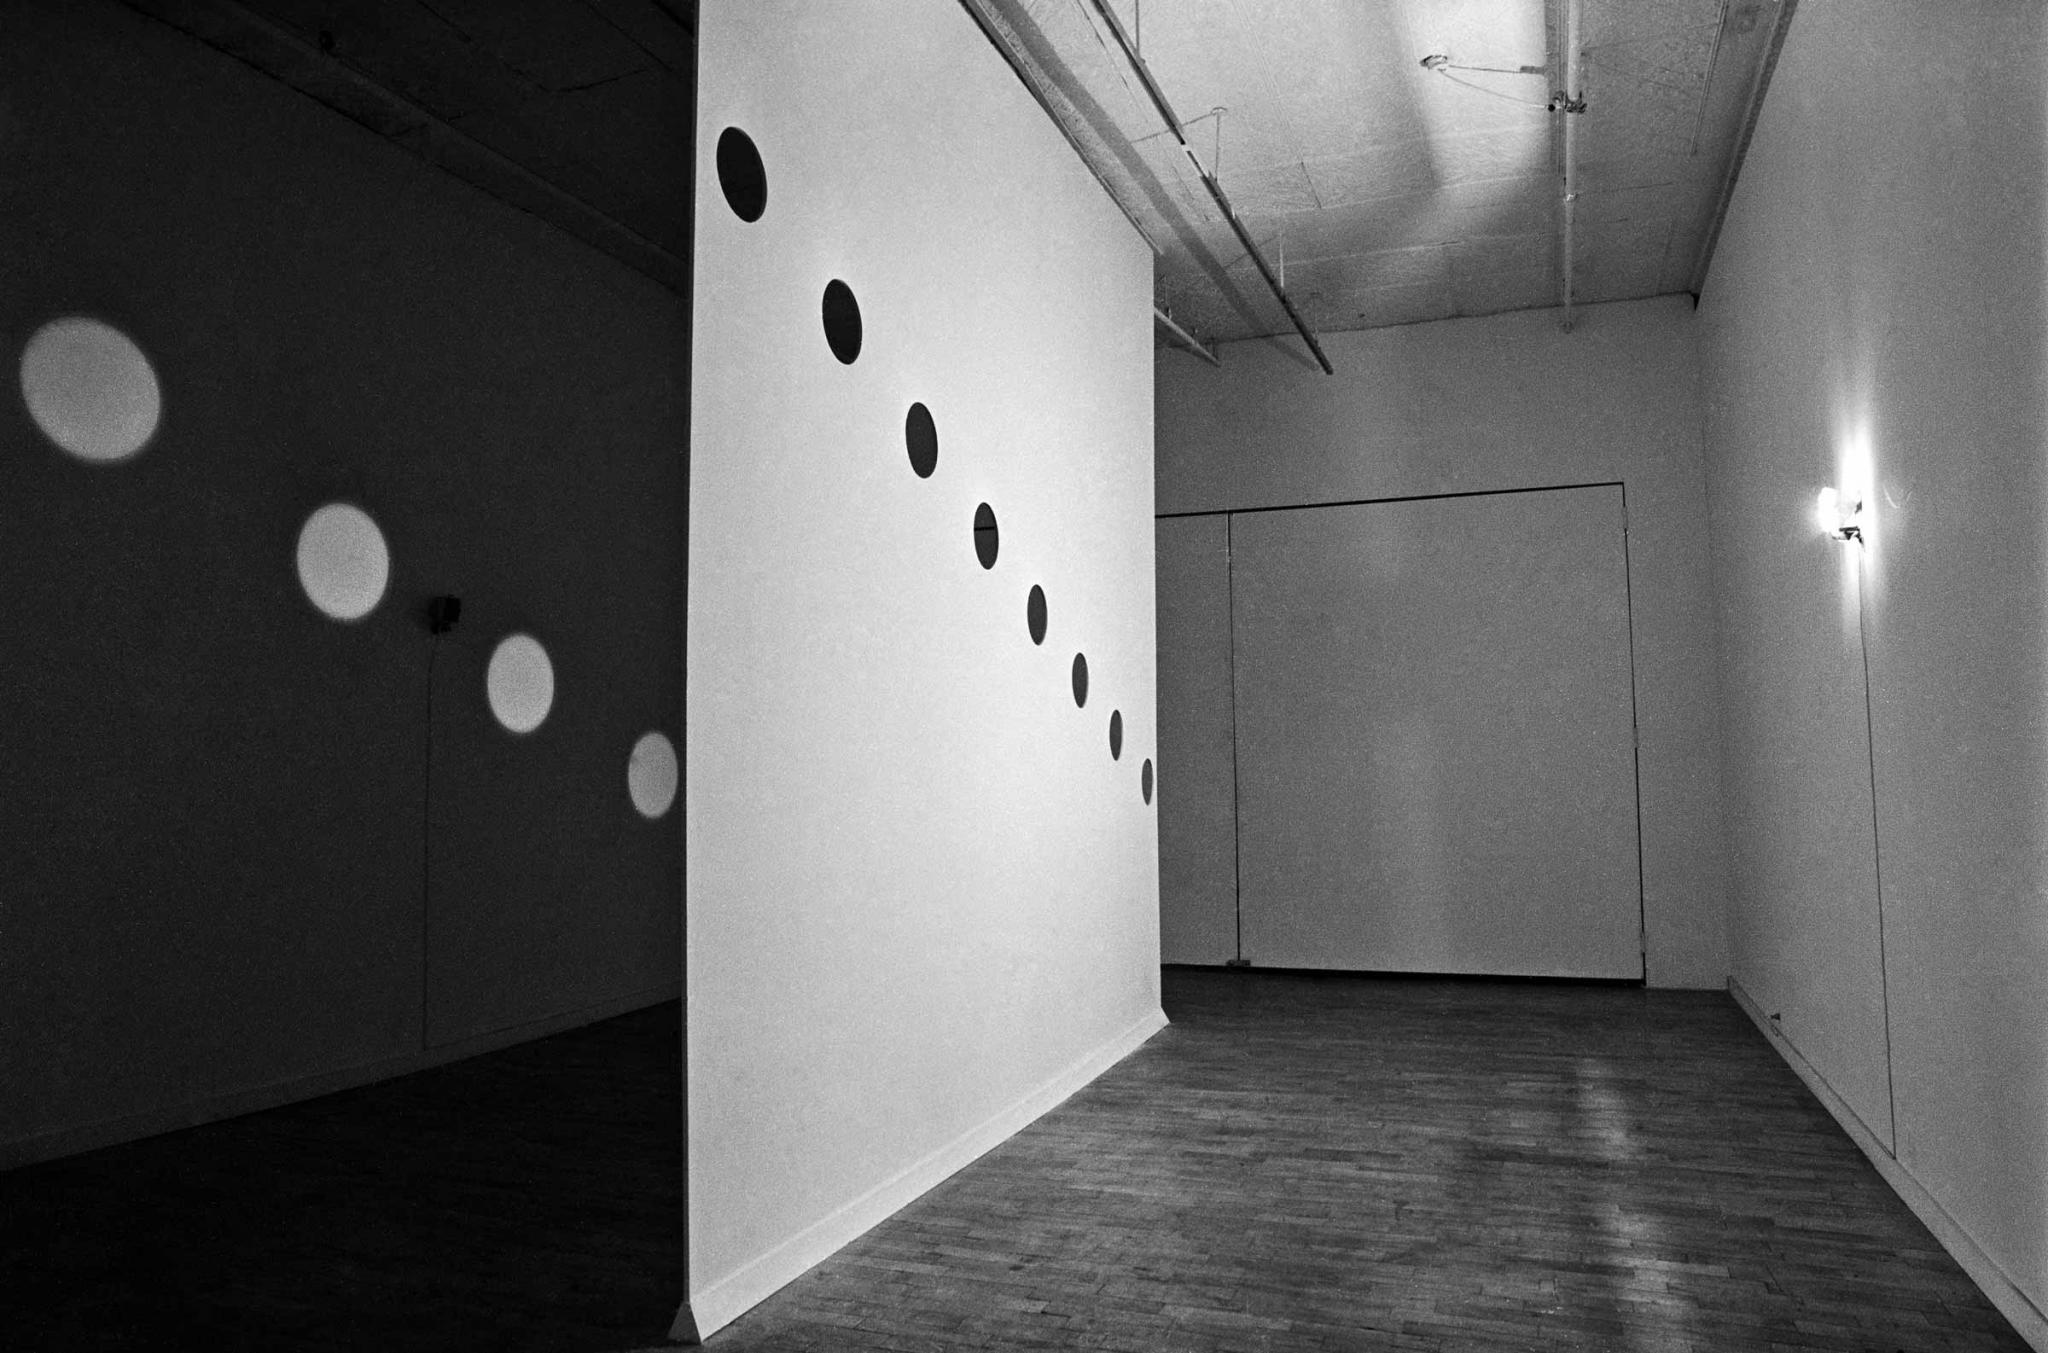 Room bisected by a wall with circular holes cut in it to let light pass through, creating orbs of light on the other side.